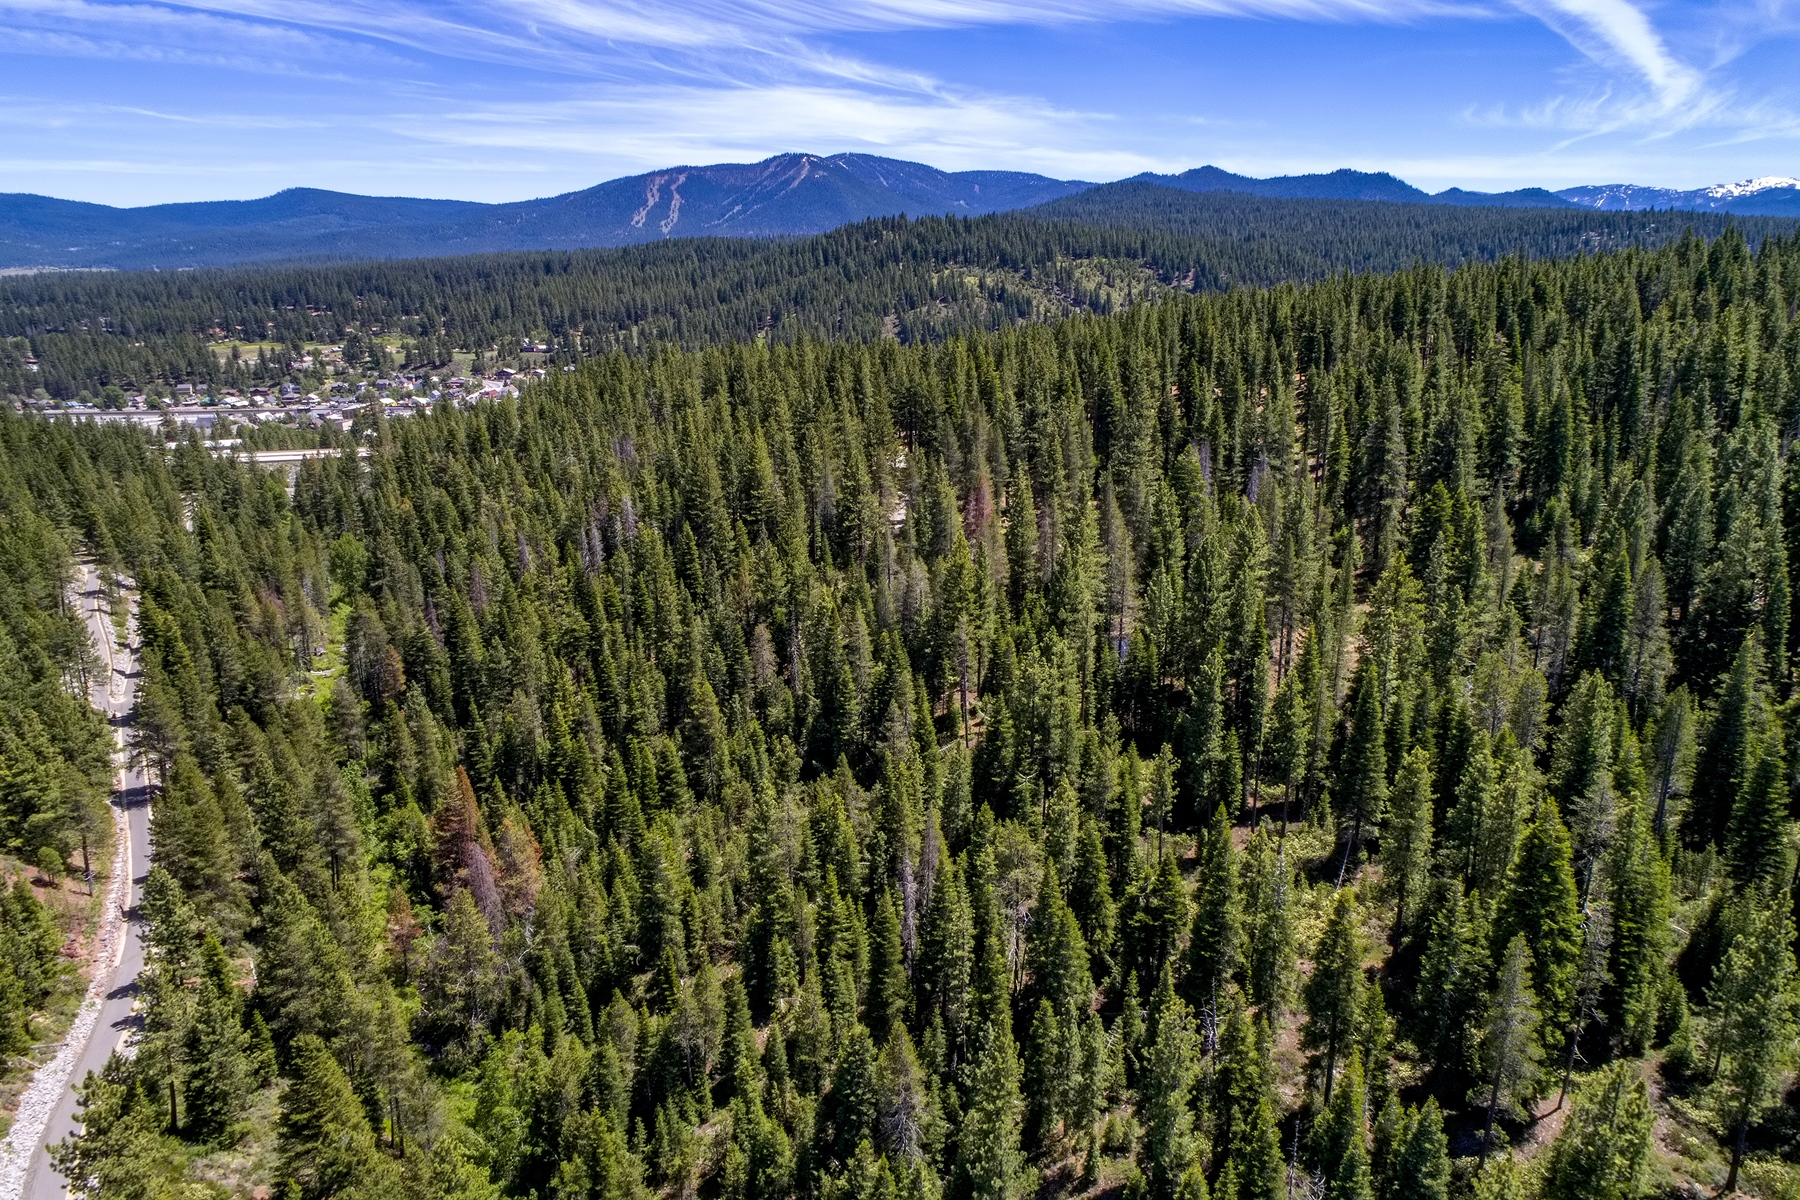 Additional photo for property listing at 000 Pioneer Trail, Truckee, CA 96161 000 Pioneer Trail Truckee, California 96161 United States